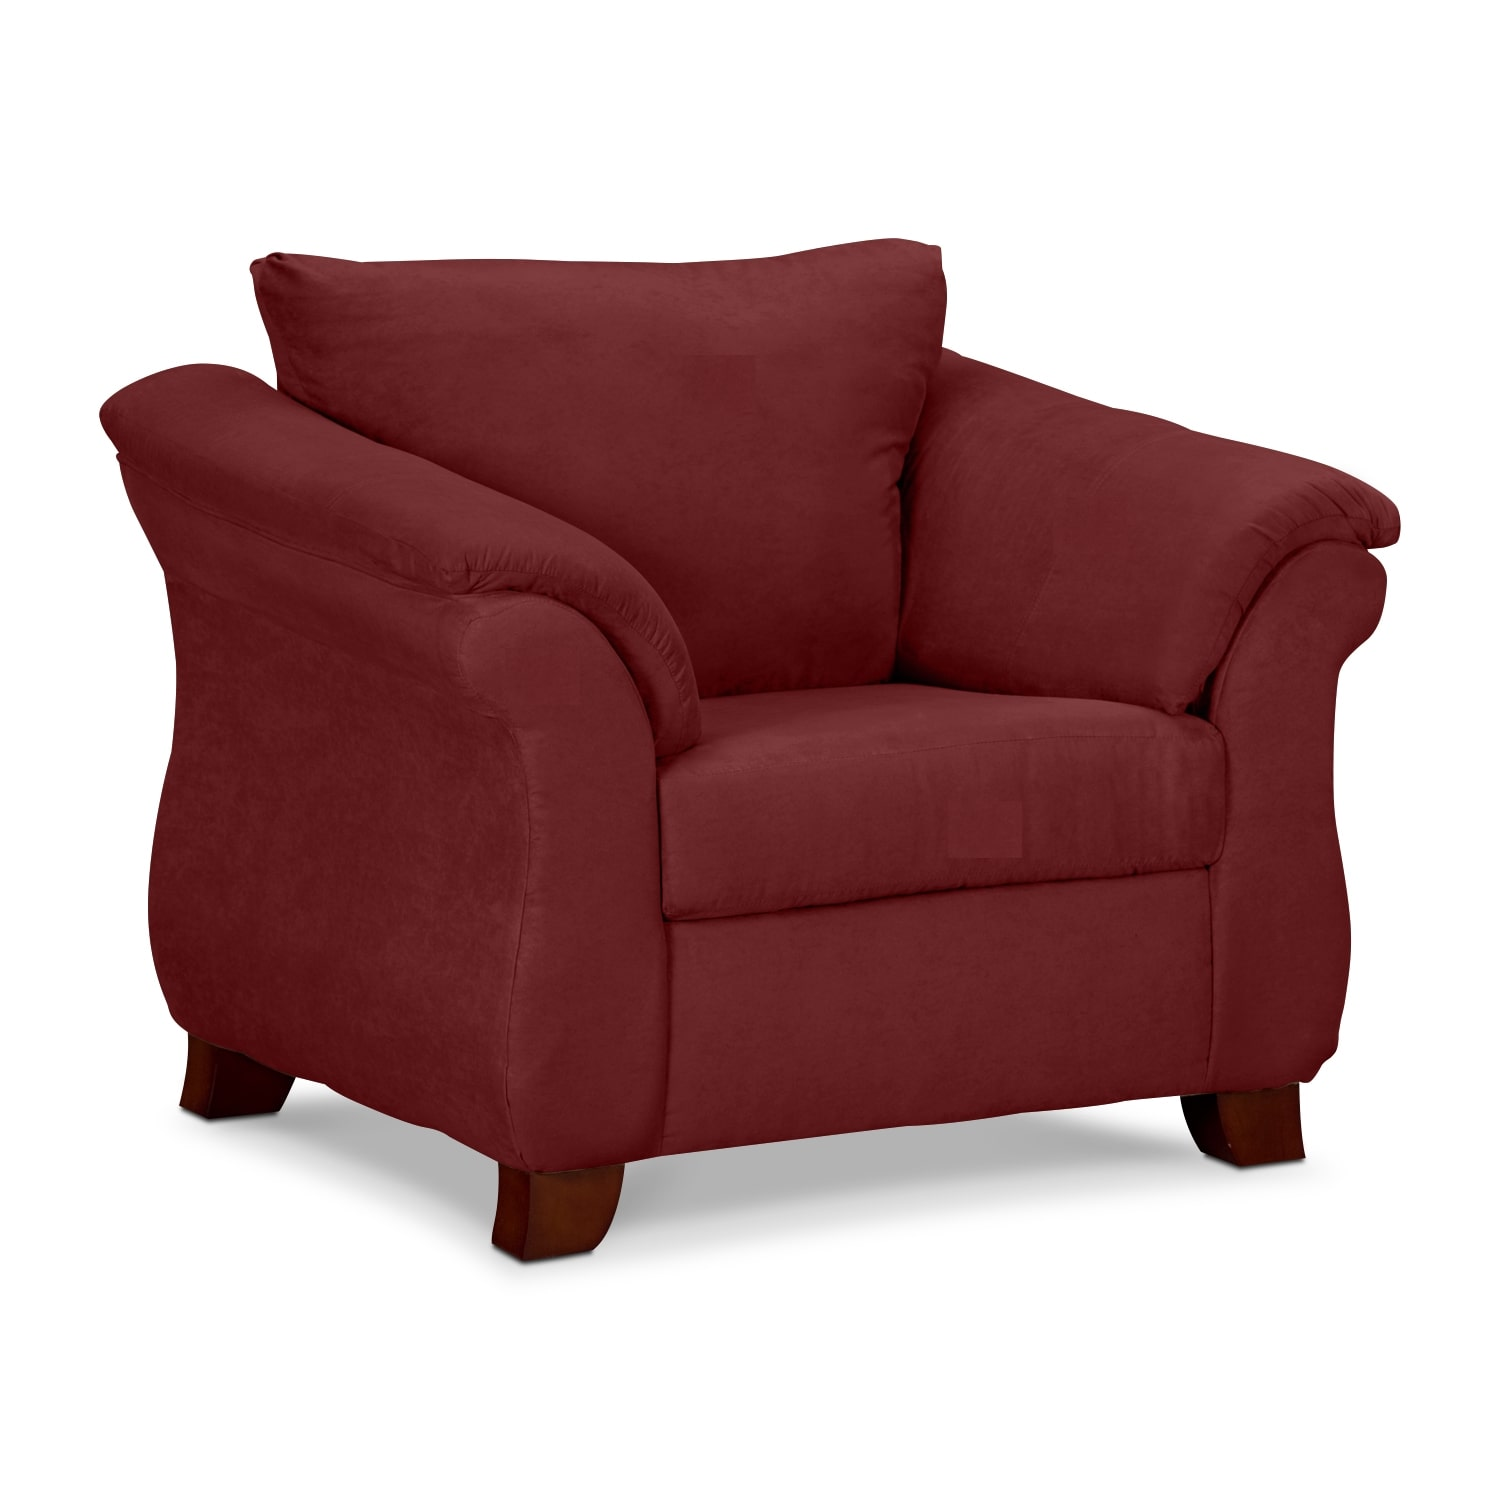 Adrian red chair value city furniture for Sitting room chairs